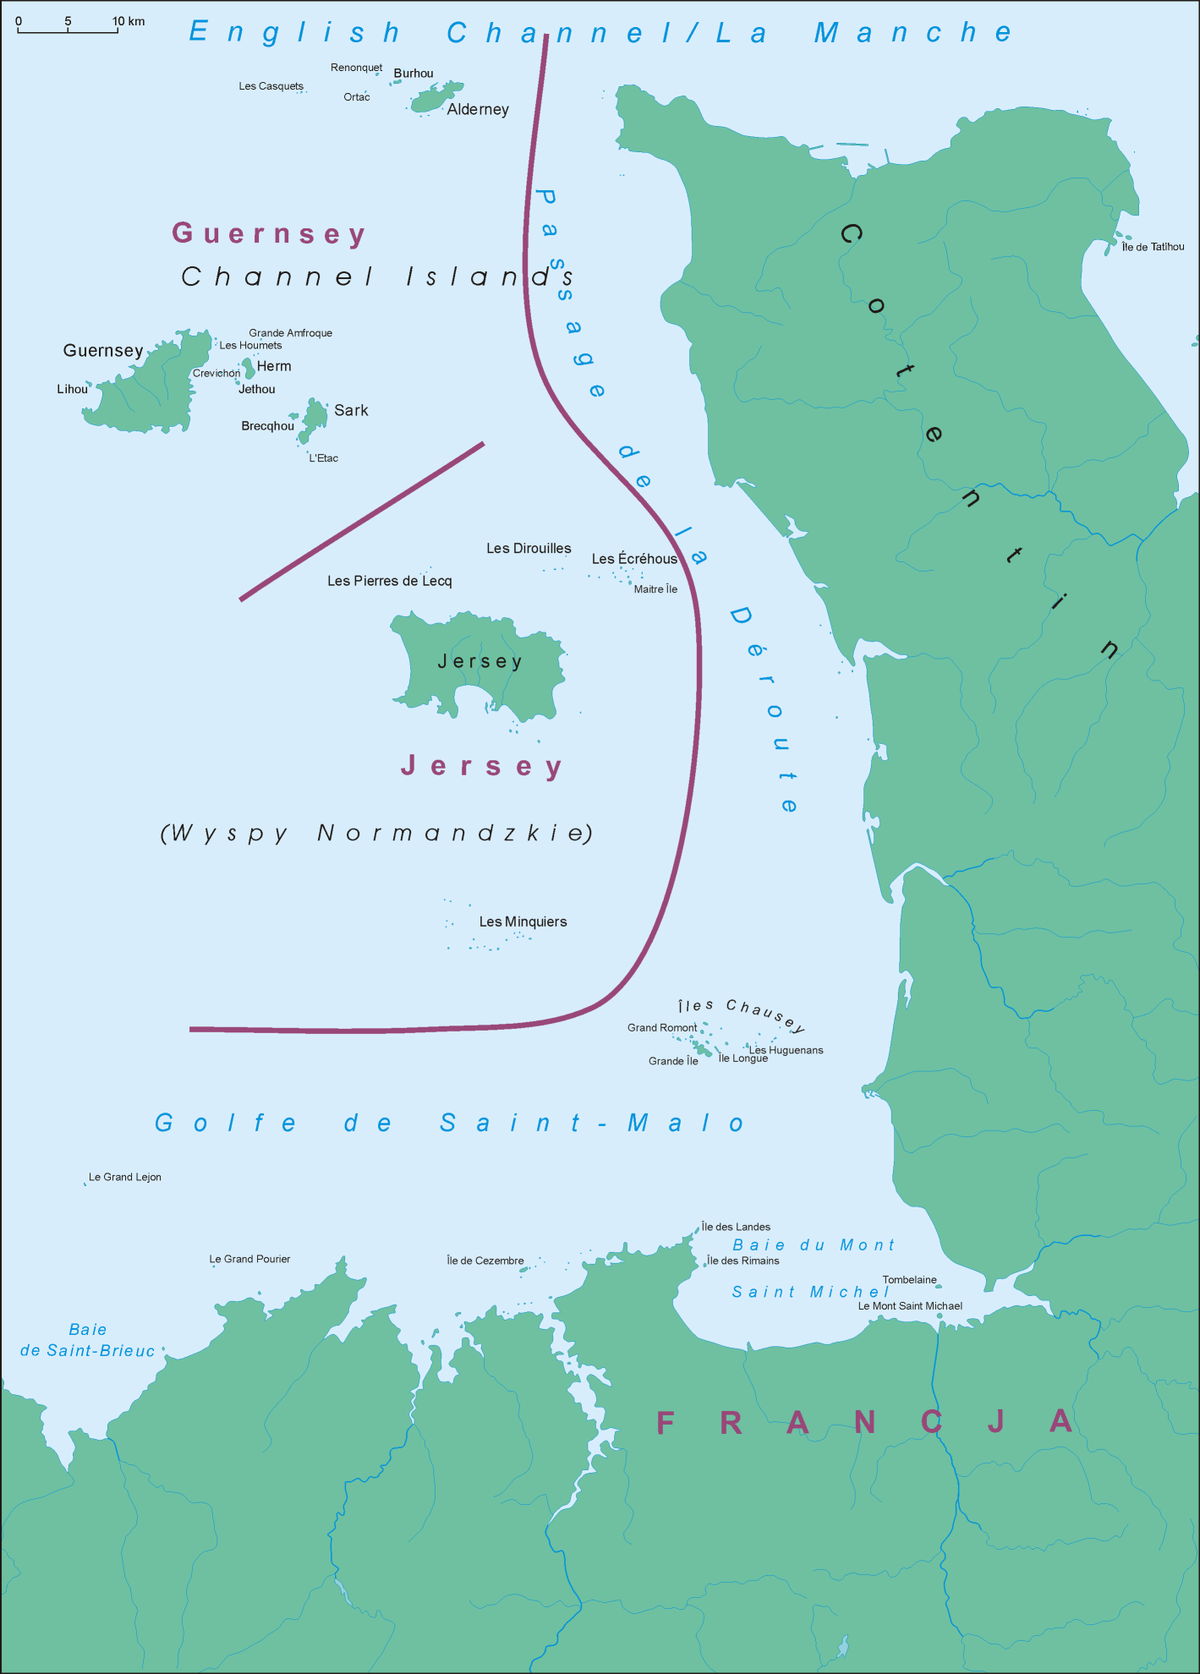 maritime history of the channel islands wikipedia